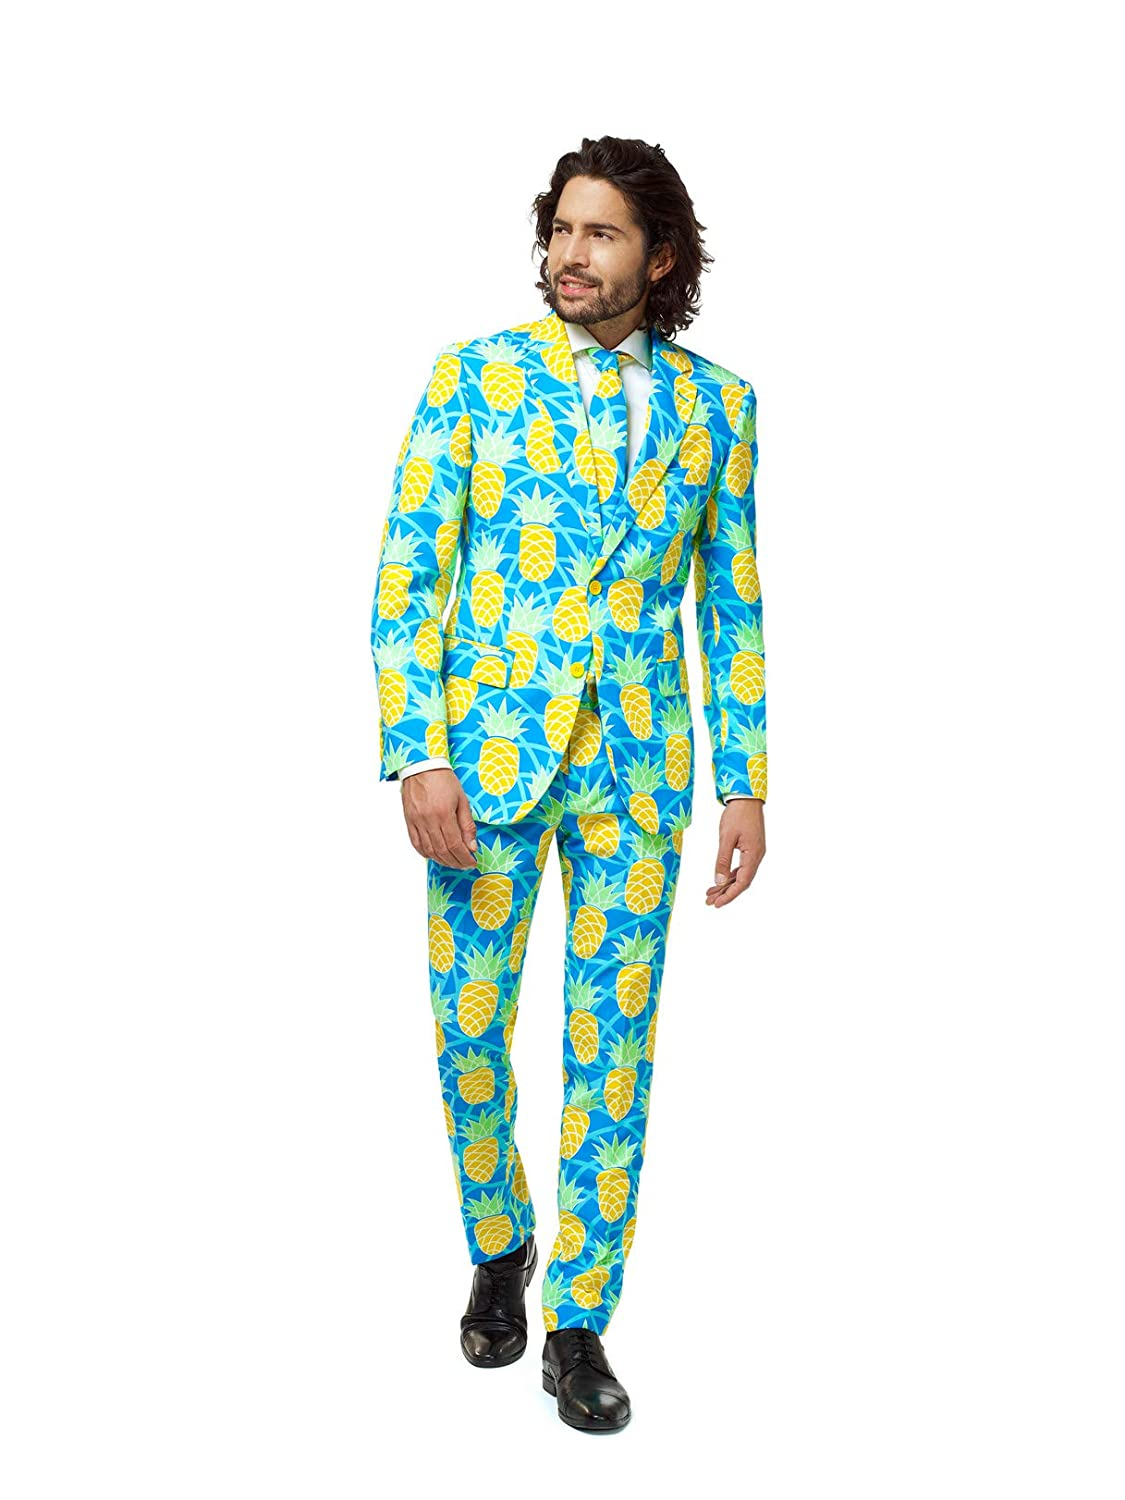 Opposuits Tropical Suits – Colorful Fancy Outfits for Men Come with Pants, Jacket and Tie